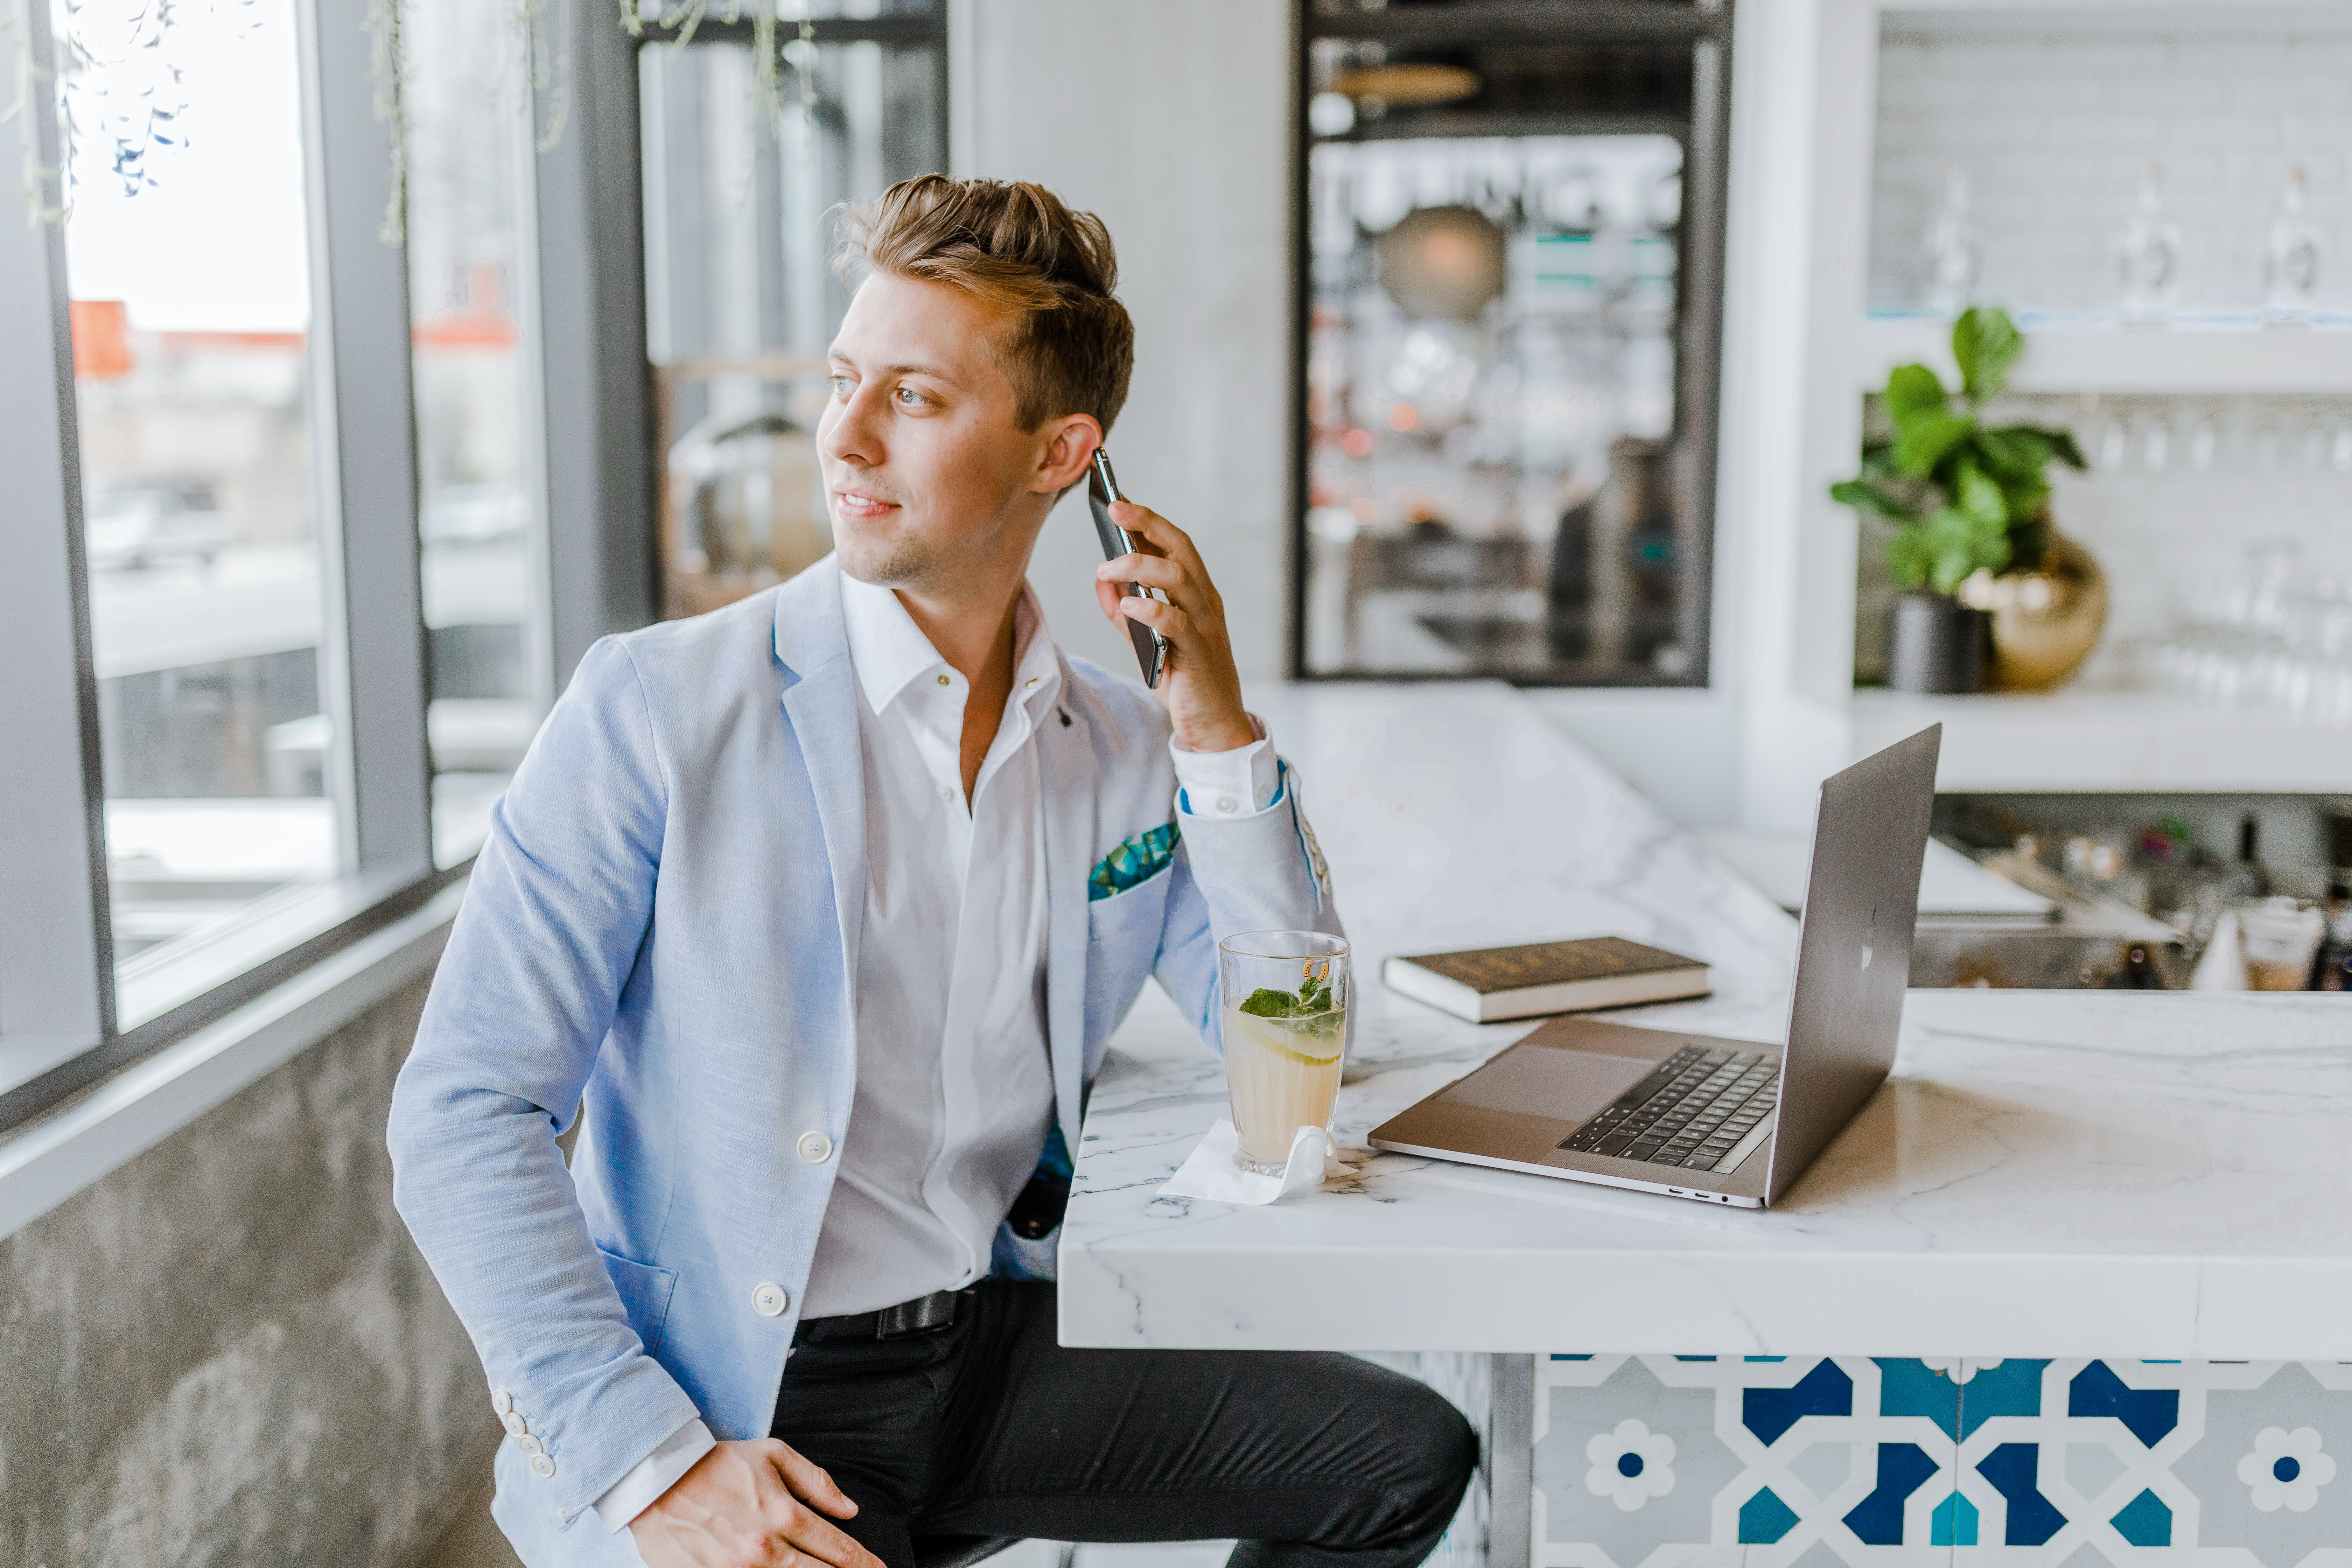 Man looking out window on the phone while sitting at his office desk